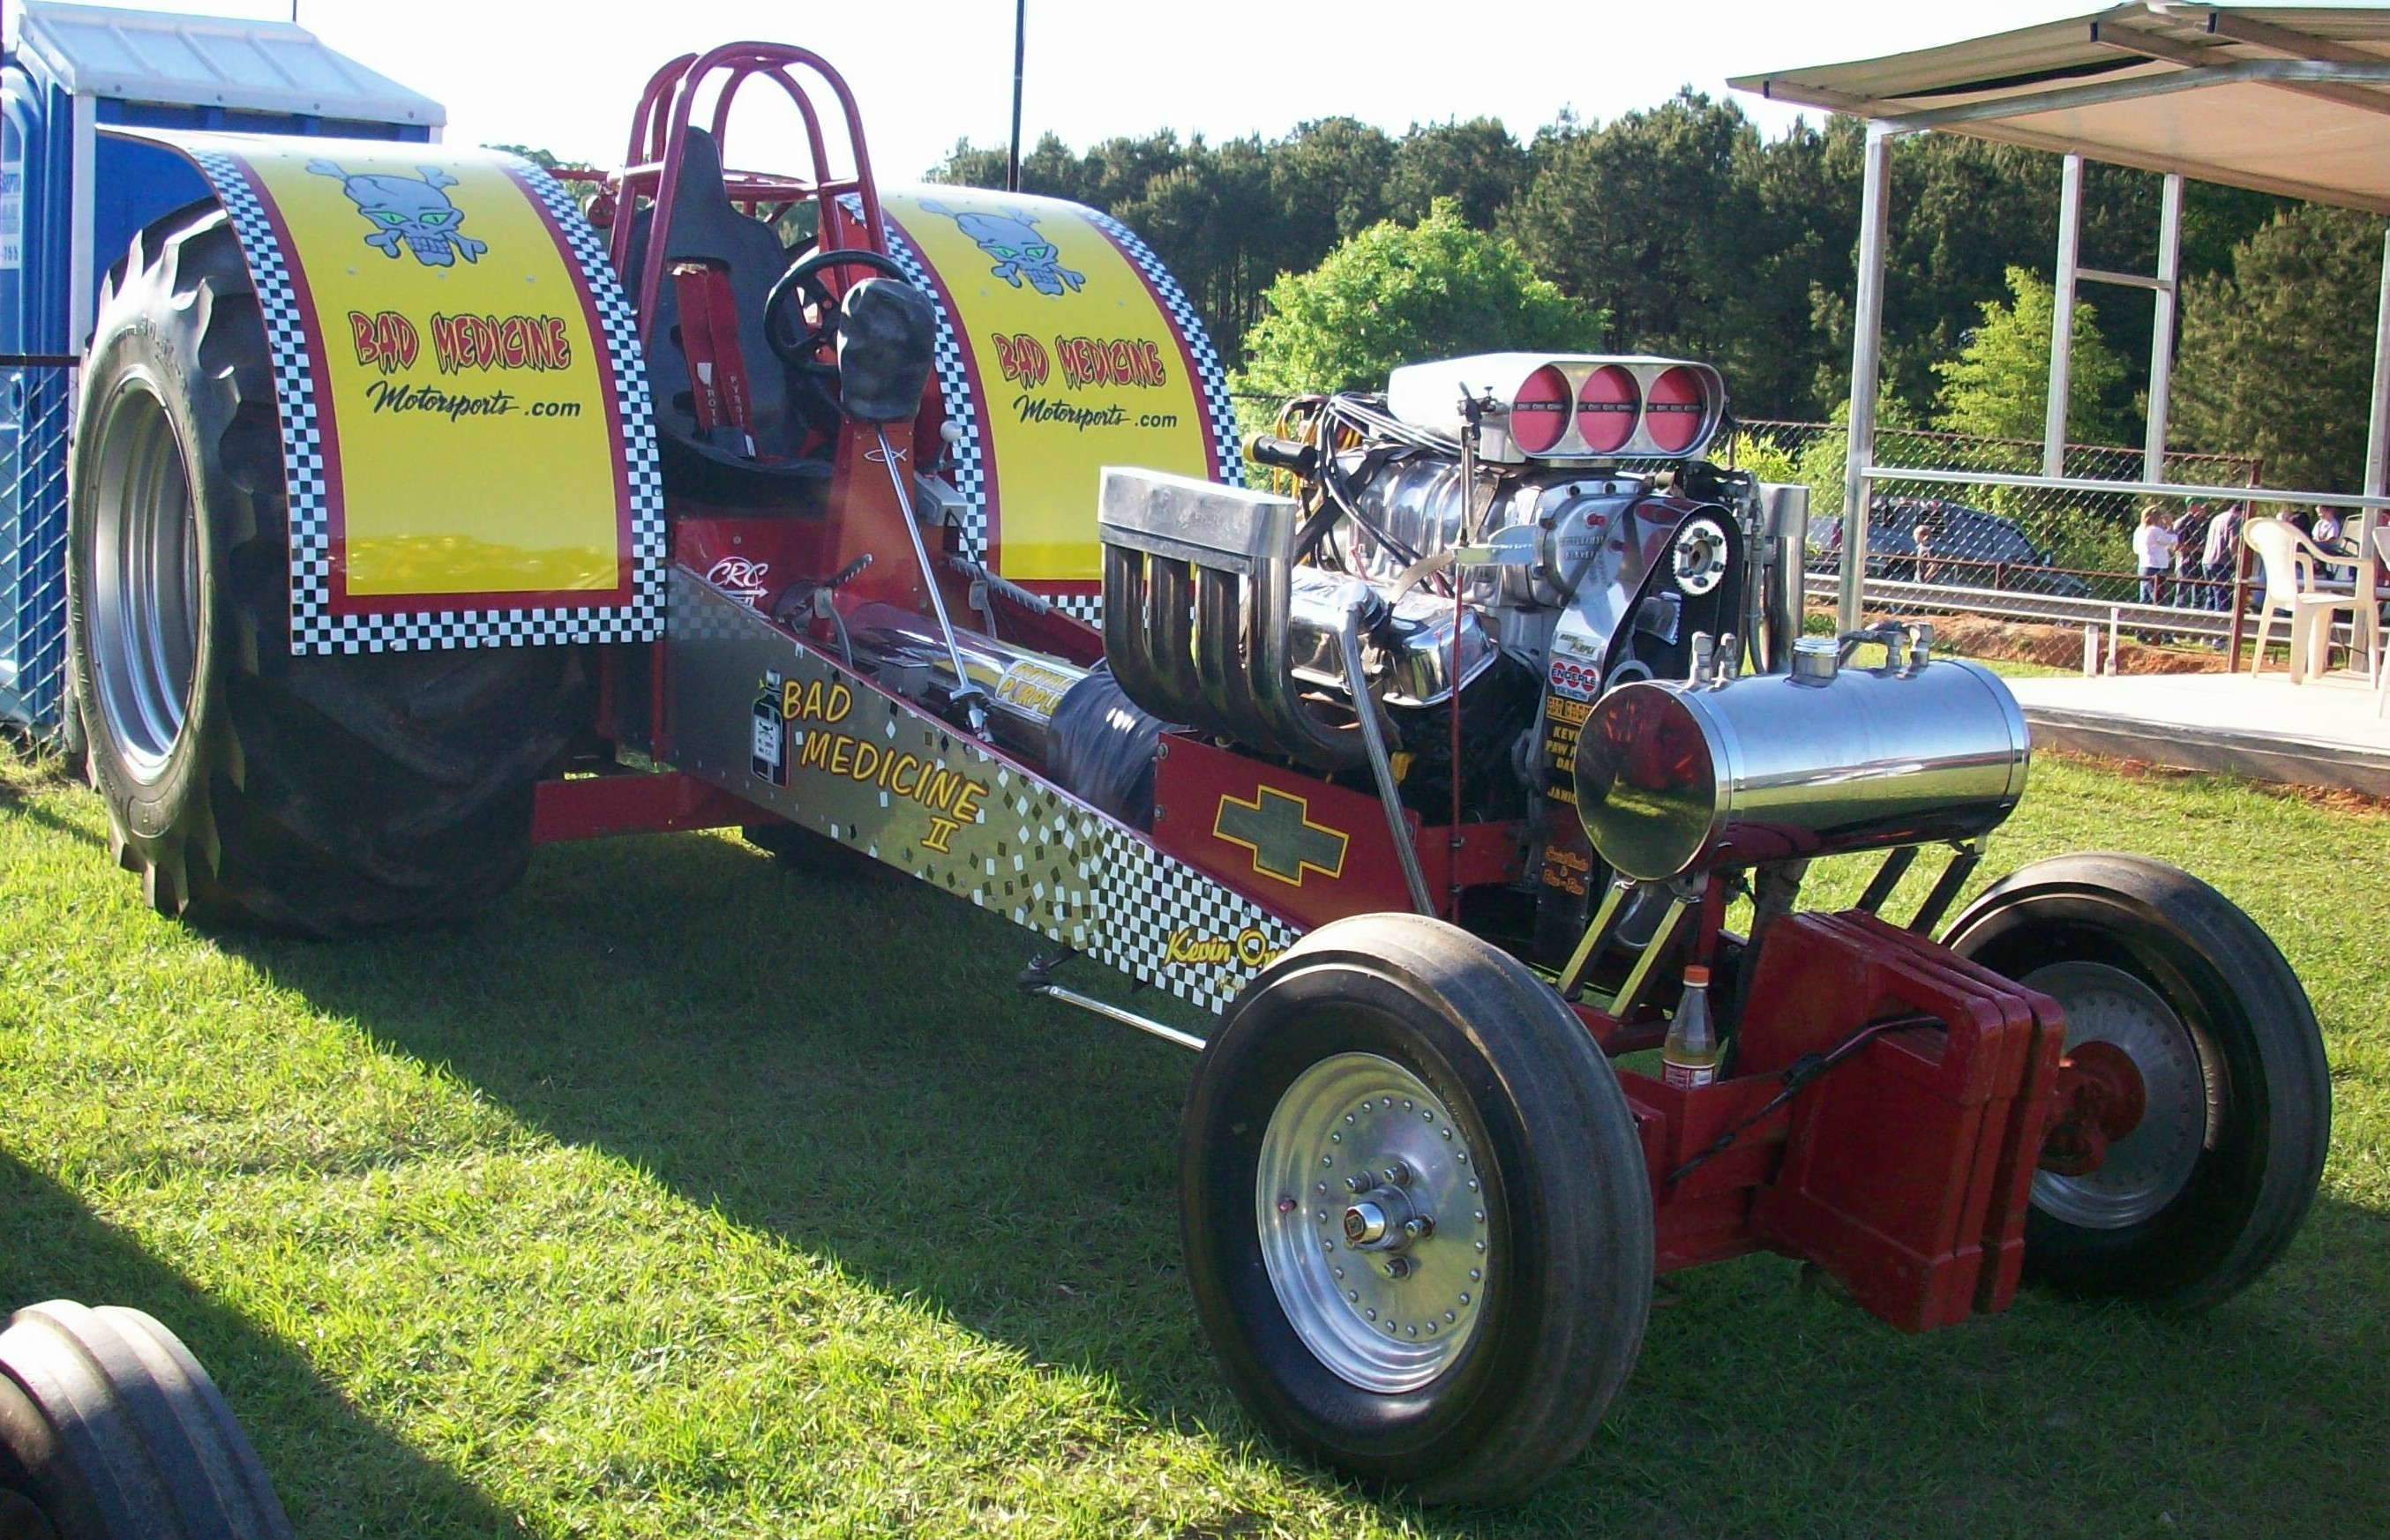 Murray Racing Mower : Lawn mower racing wikipedia autos post